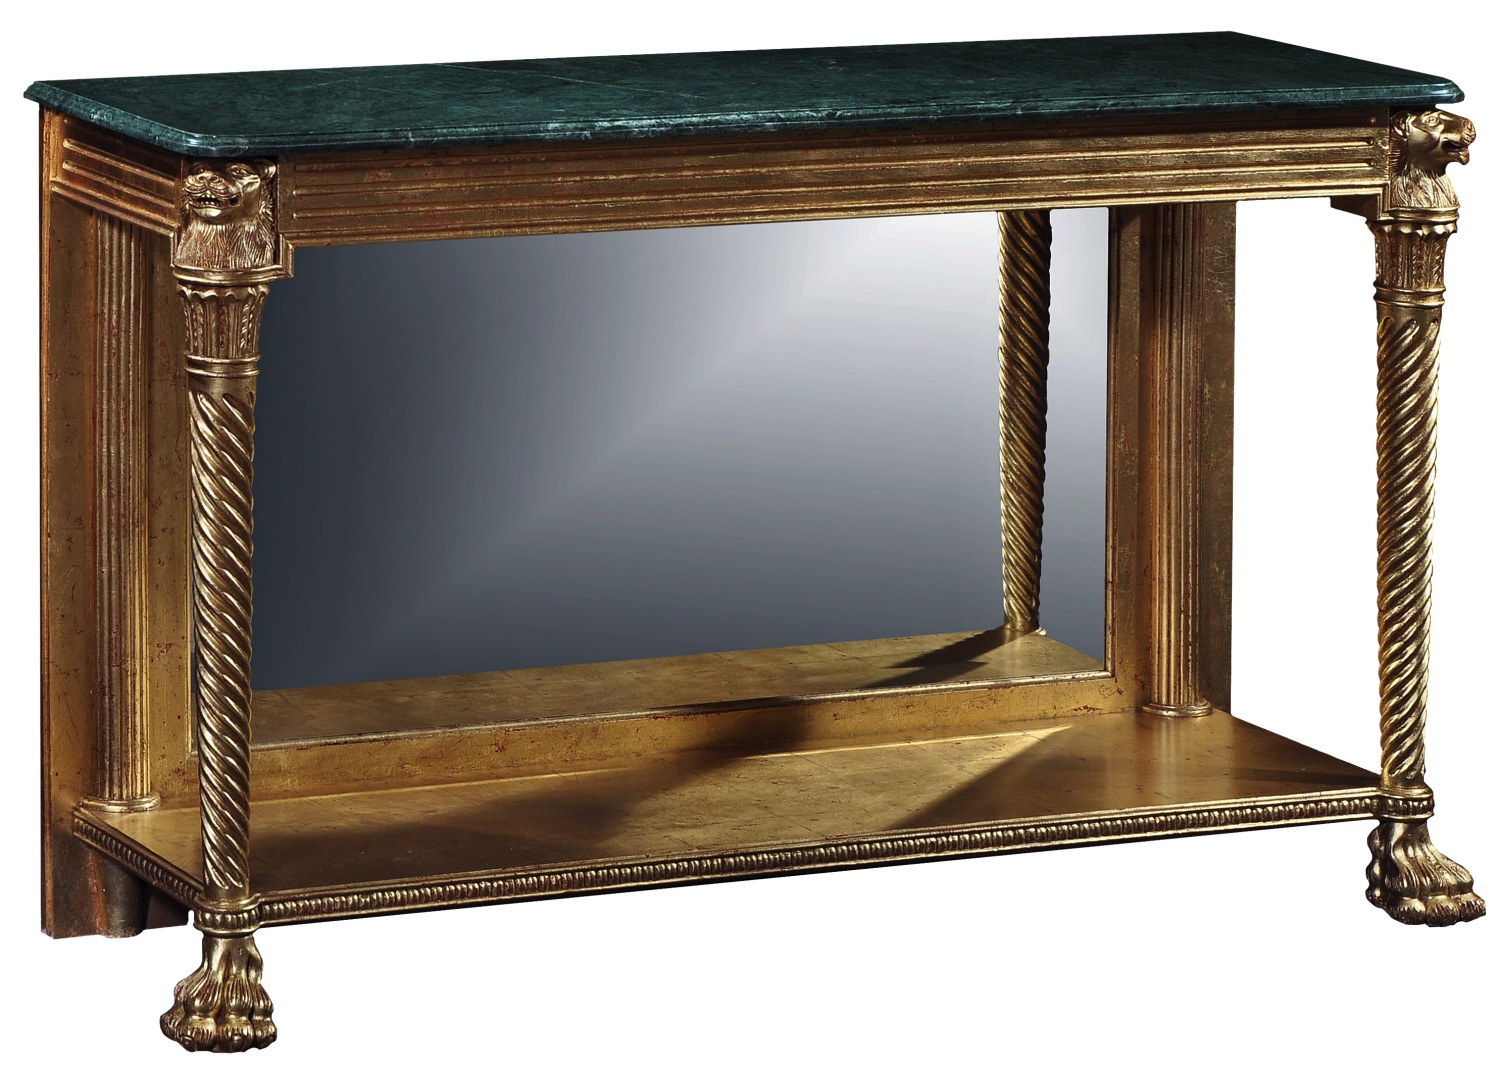 Gillows console table